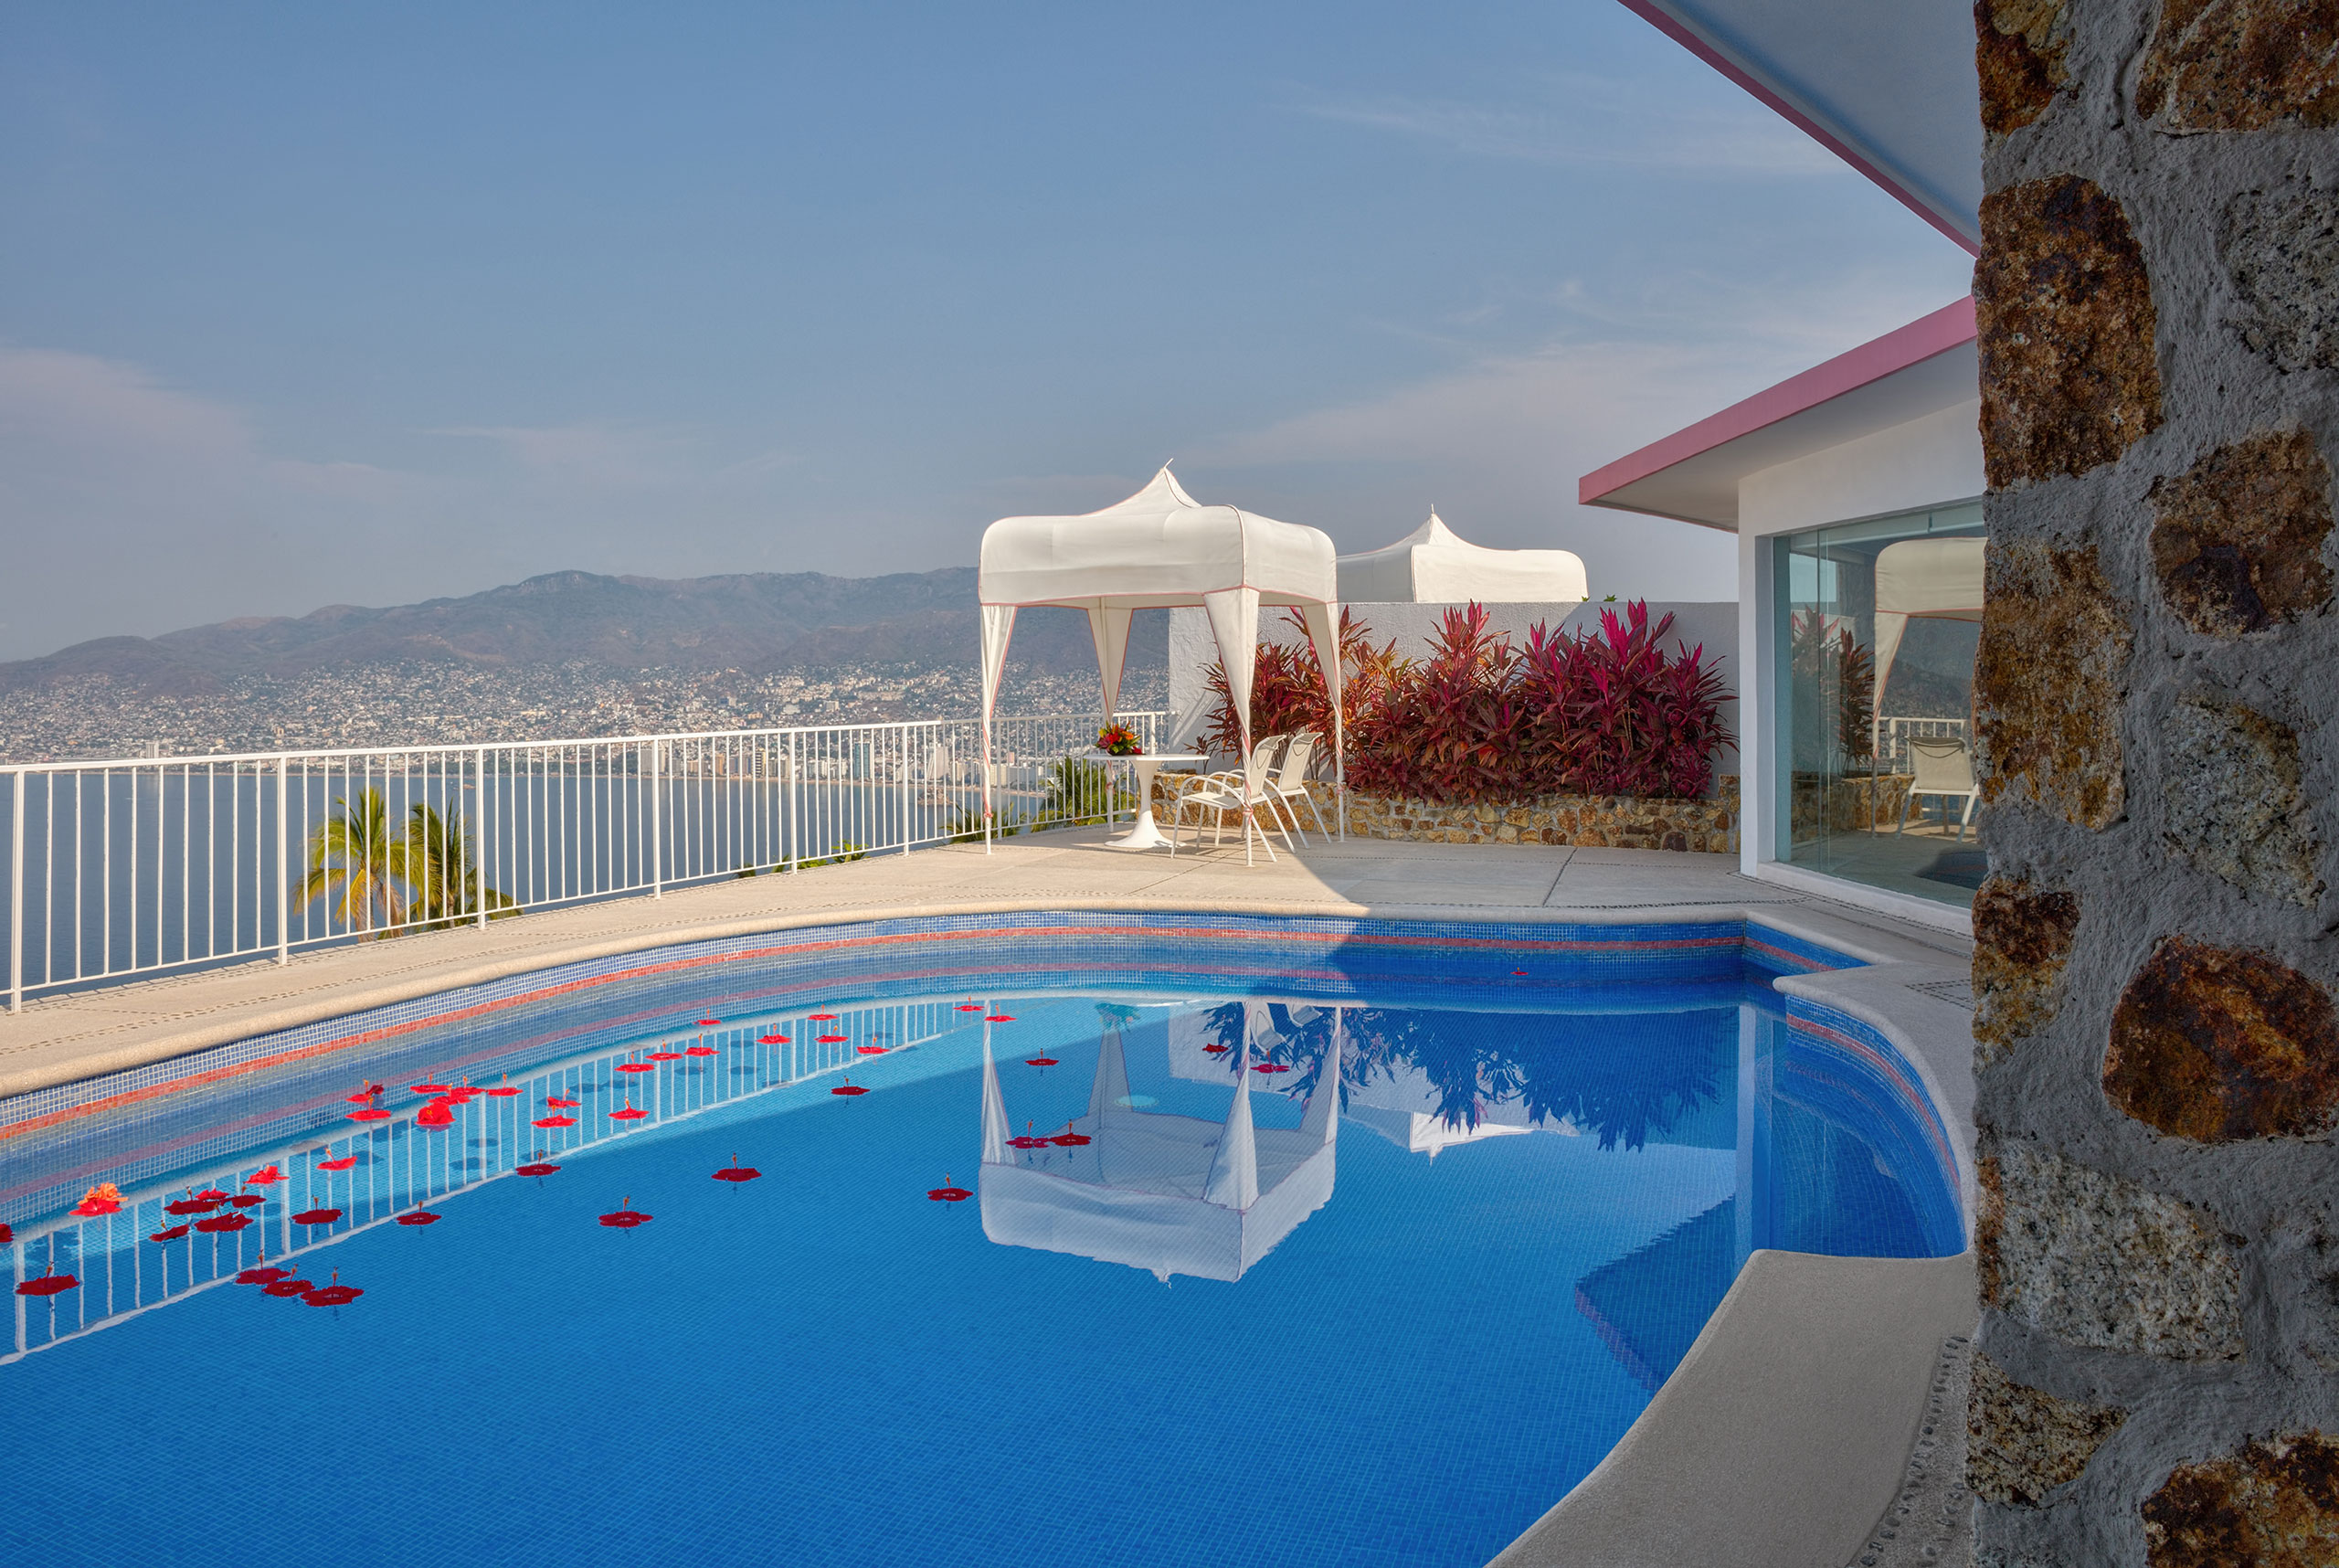 Hotel Las Brisas Acapulco Master Suite with Indoor/Outdoor pool